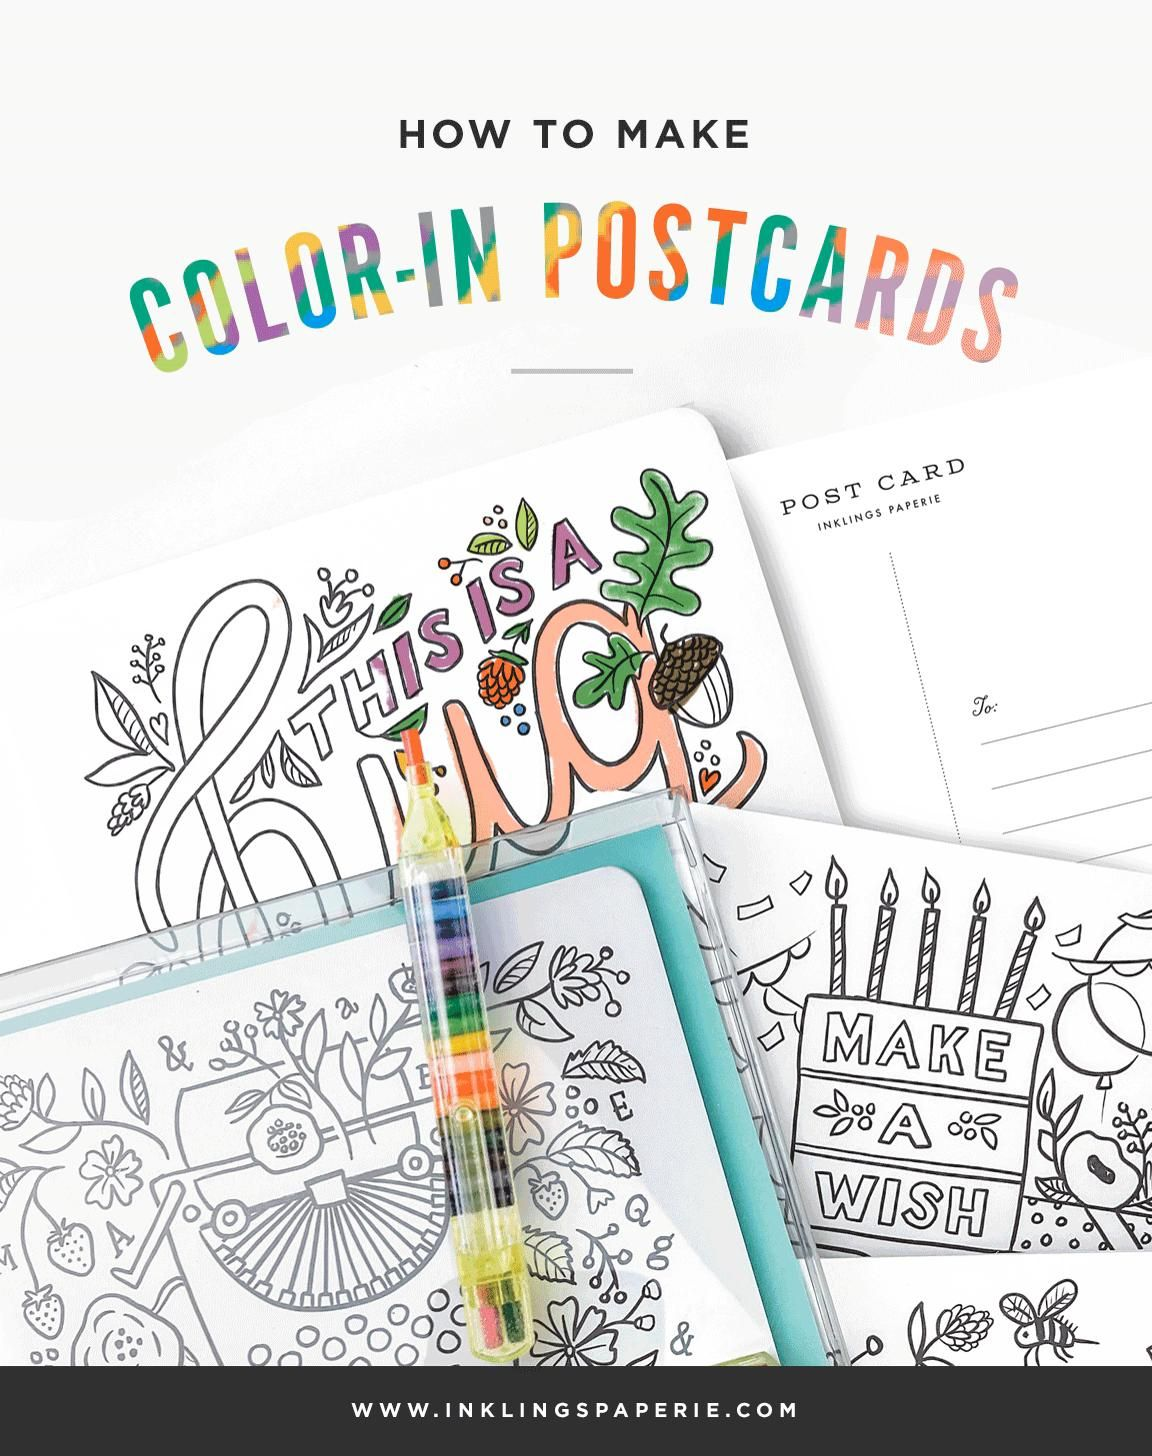 QUARANTINE FUN FOR KIDS!! This cute 12-pack Color-In Postcard Kit from #InklingsPaperie includes an amazing retro pencil and an assortment of postcards to color and mail! #kids #summercraft #quarantinecraft #coloringsheet #summerideas #summerfun #coloringbook #kids #craftsforkids #quarantine #postcards #diypostcard